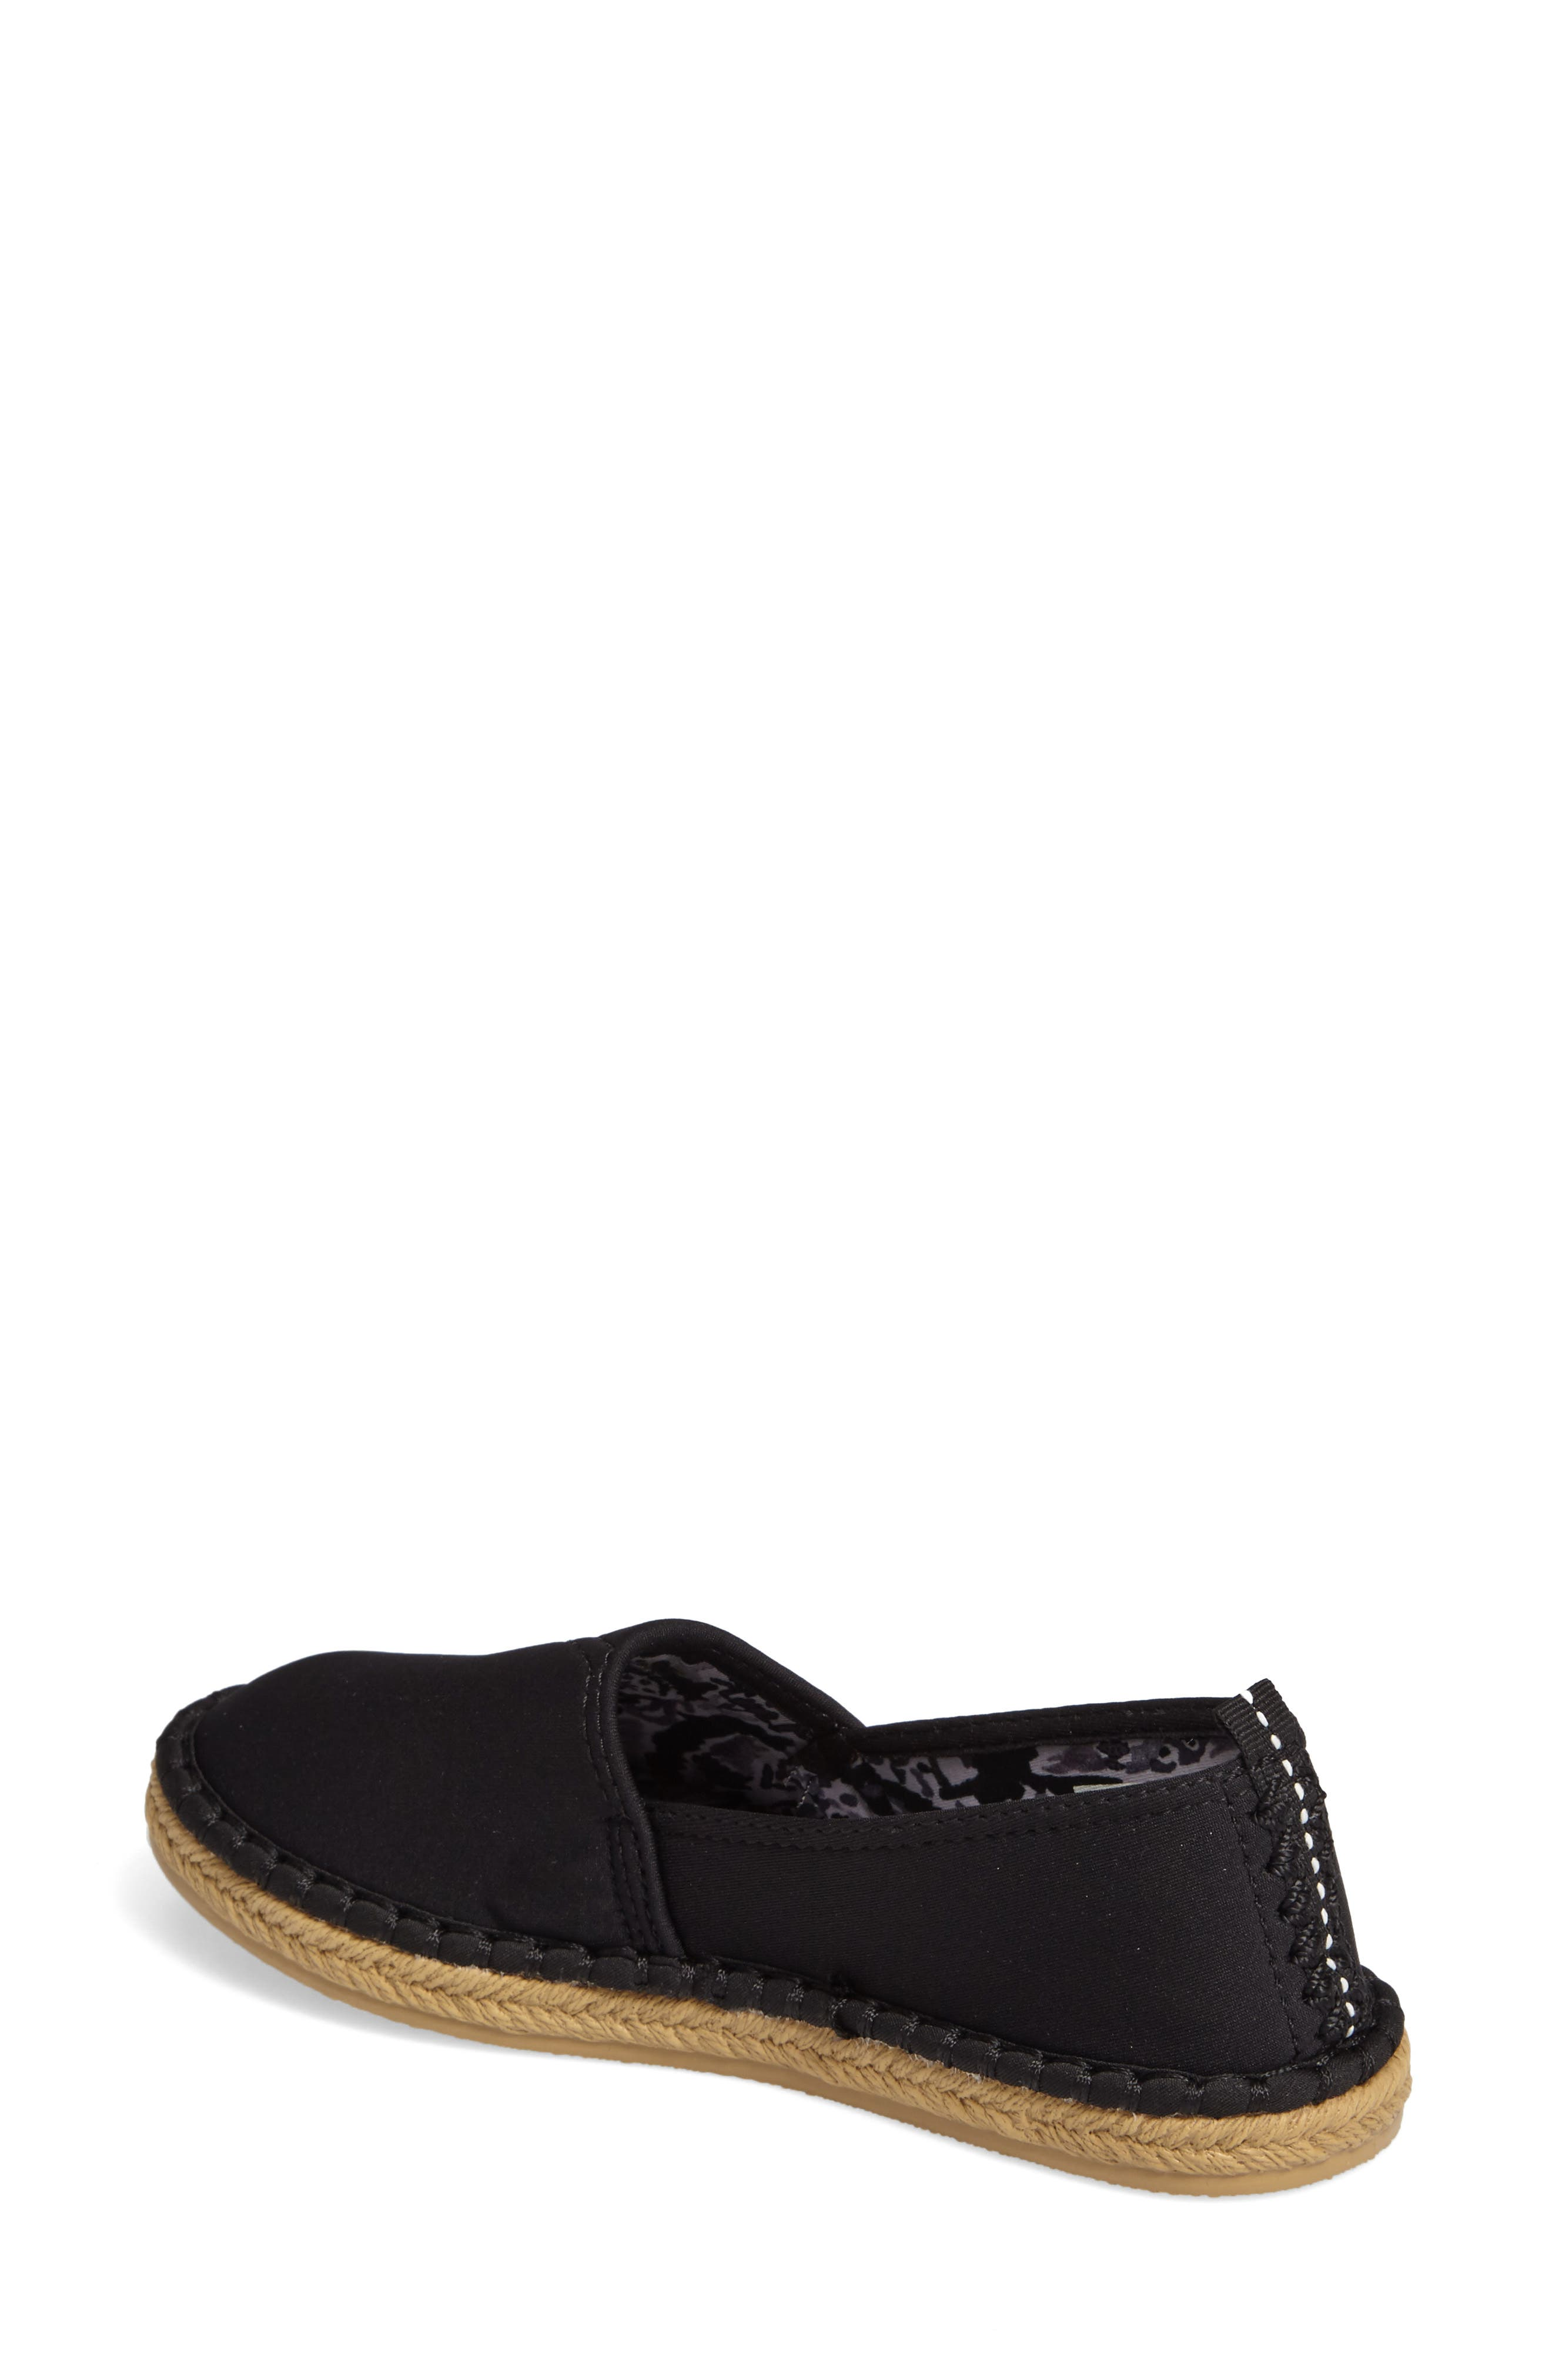 Eton Espadrille Flat,                             Alternate thumbnail 8, color,